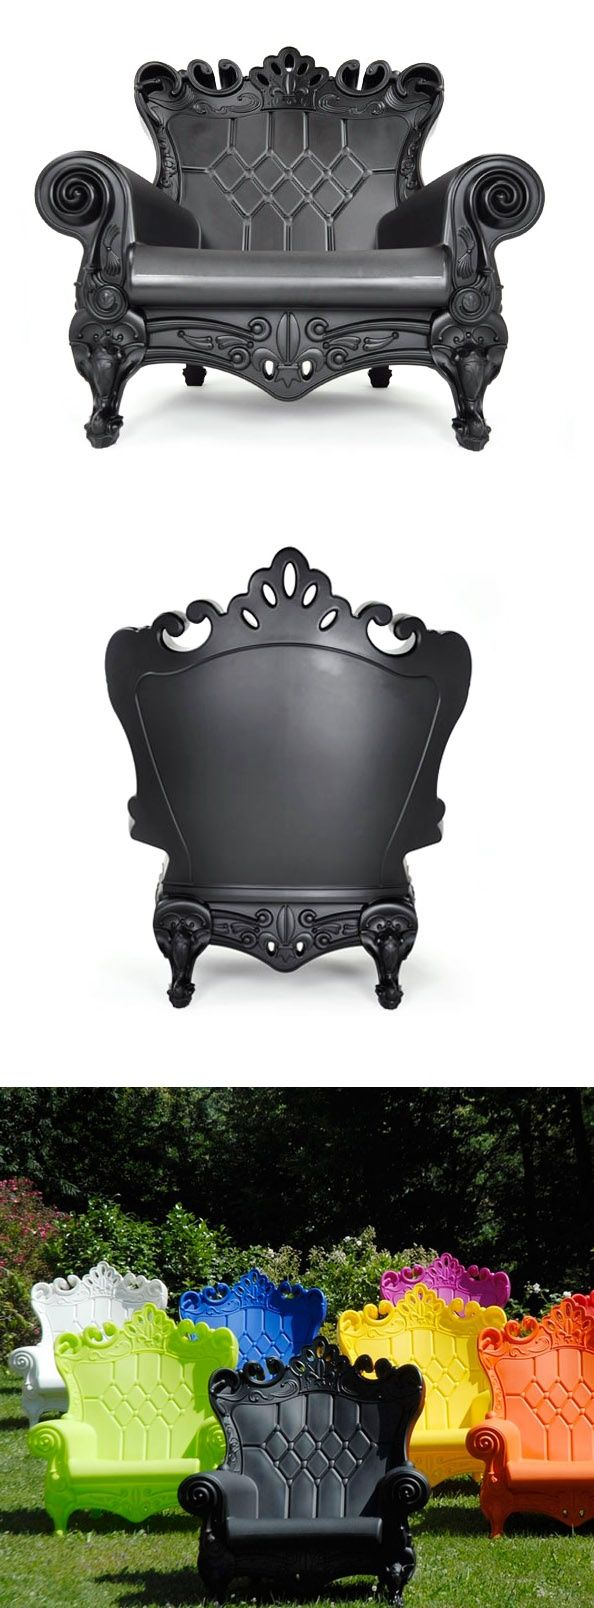 A plastic chair worthy of a garden setting. Baroque Plastic Chair - from FAB